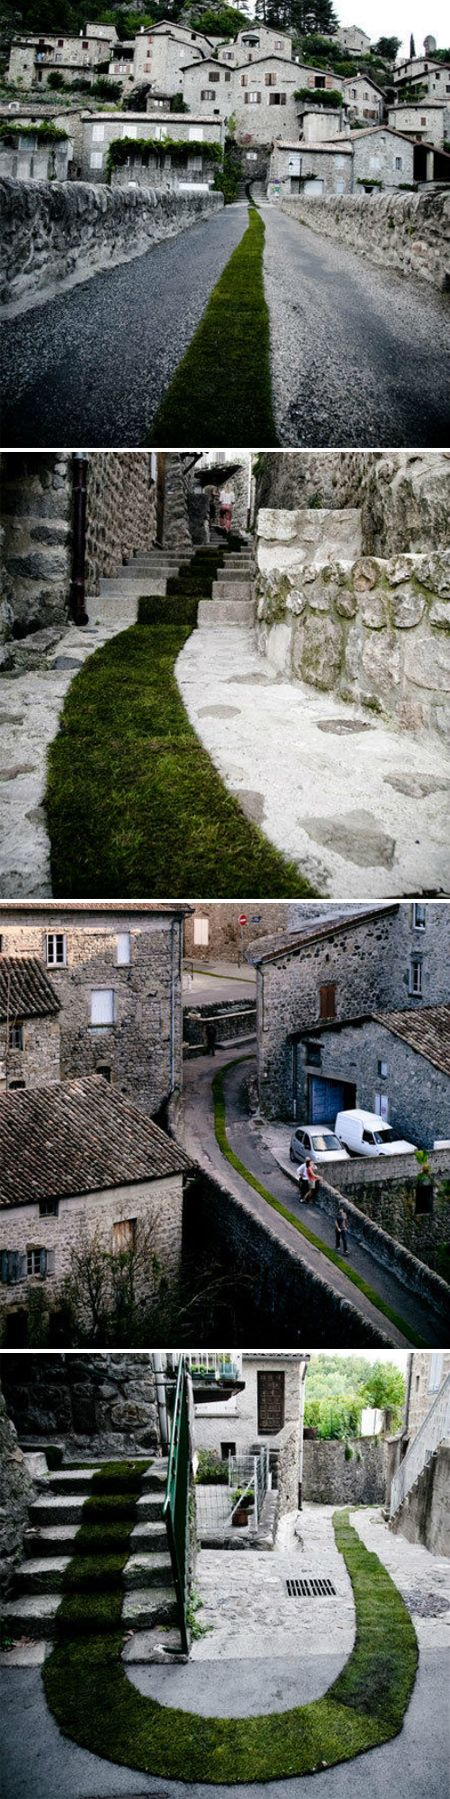 Installation in the town of Jaujac, France by the artist Gaelle Villedary. I love paths that are meant to be followed like this.